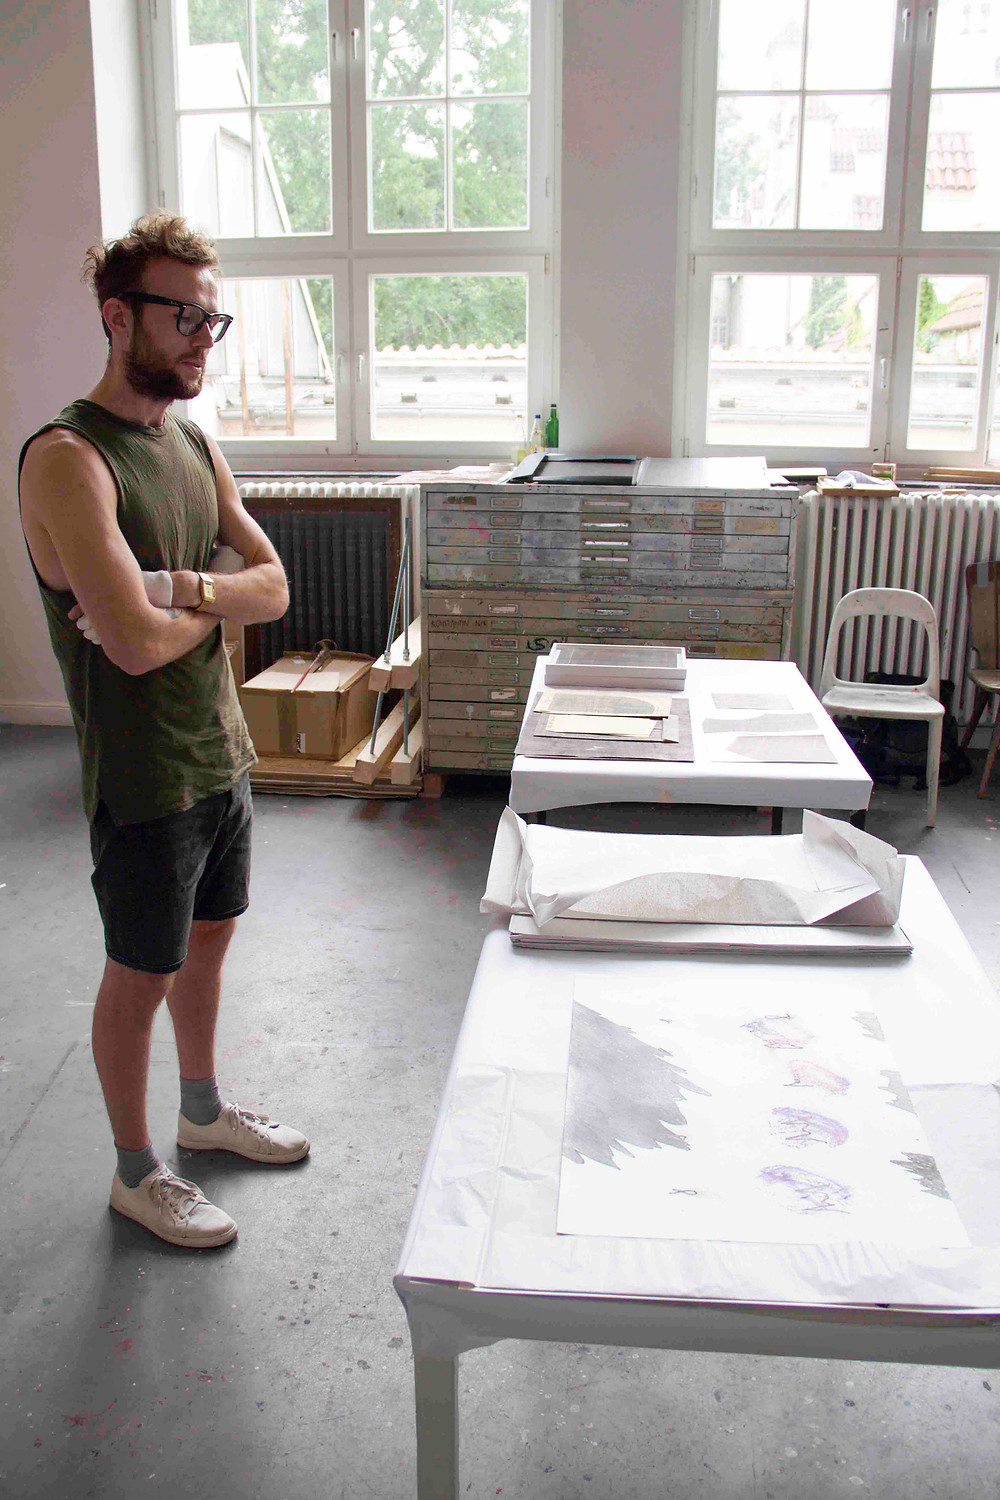 Felix Baxmann in his studio at UdK Berlin